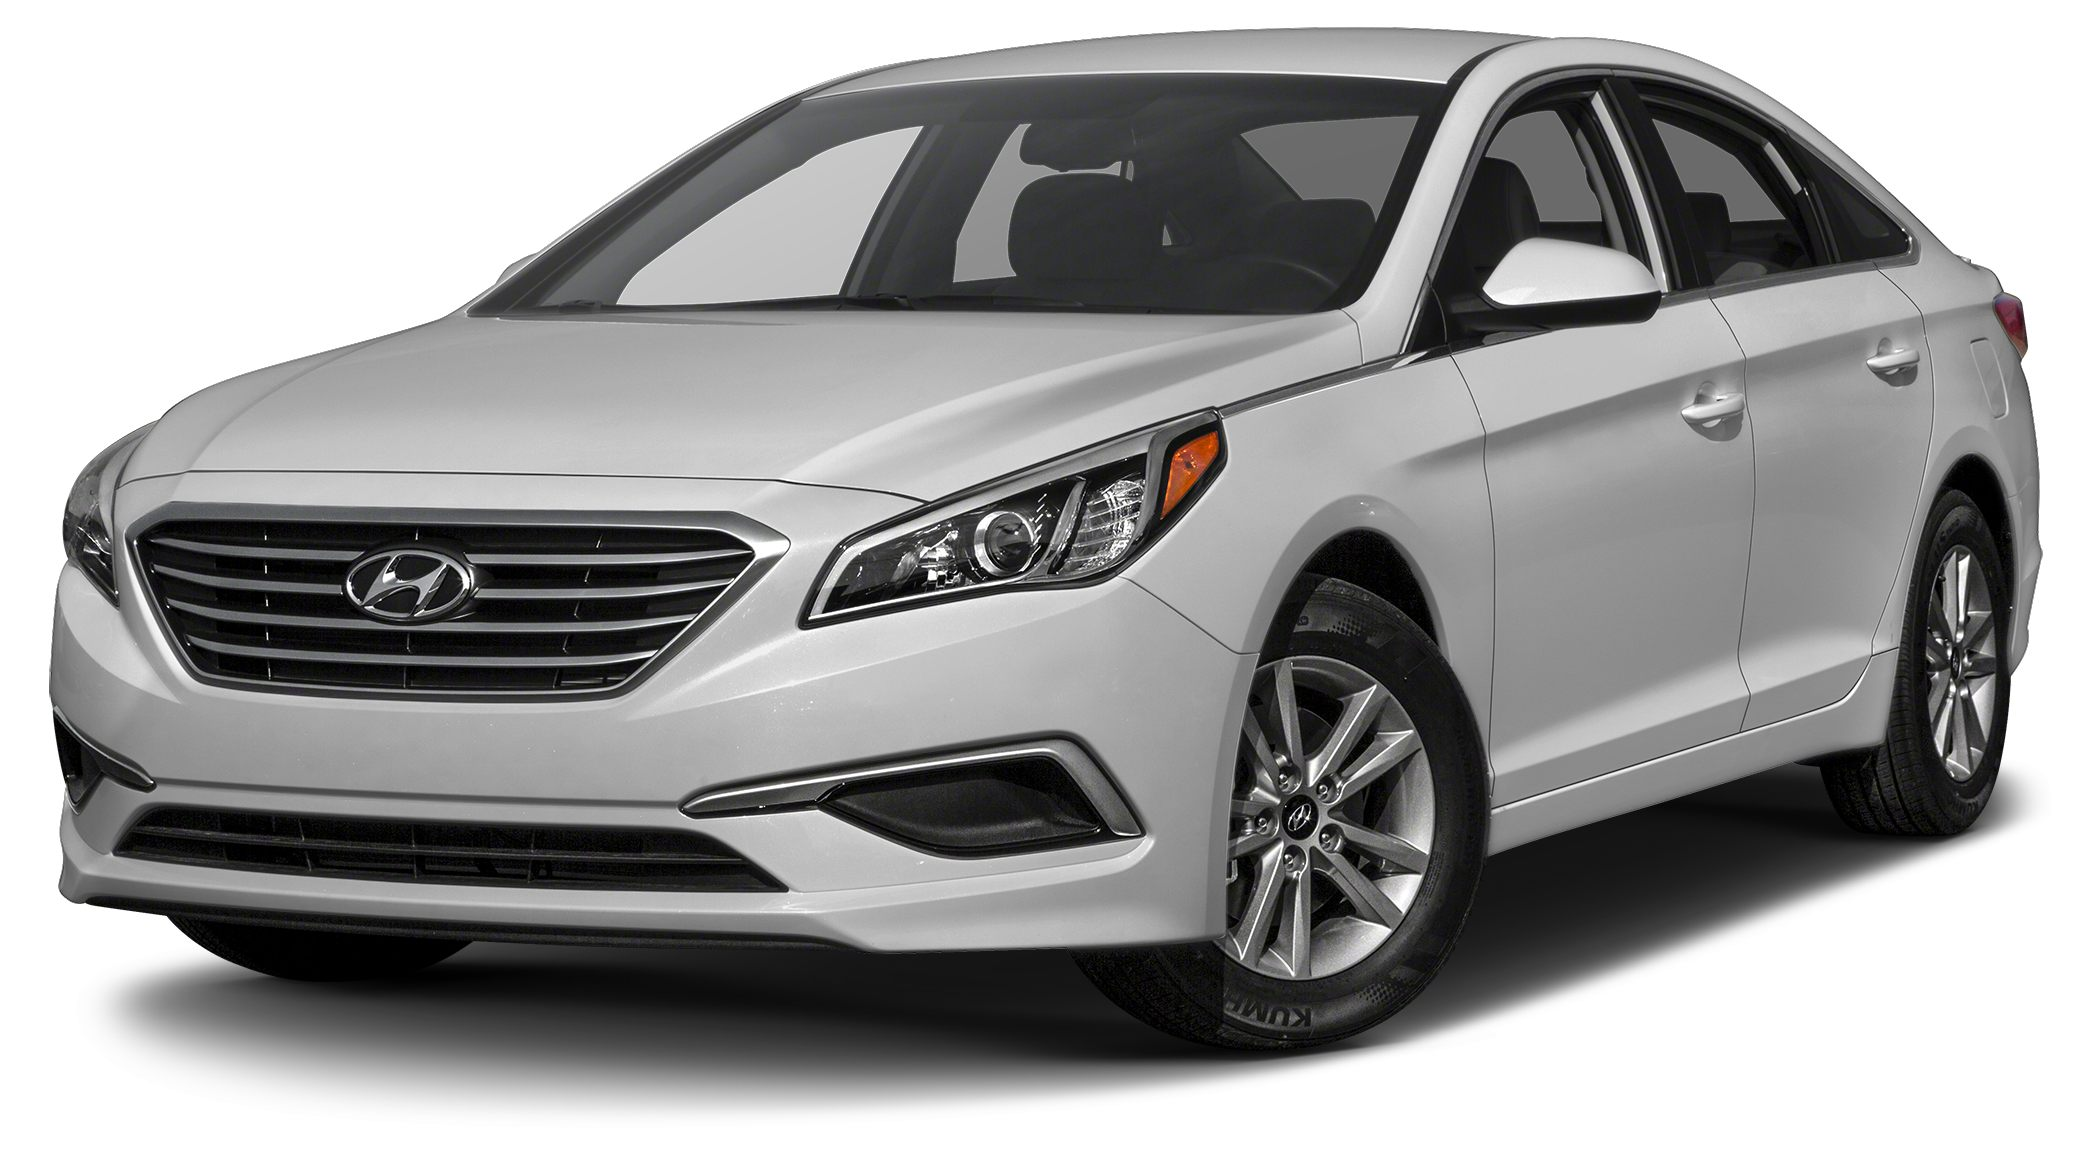 2017 Hyundai Sonata SE Transparency is our goal The Our Cost Price includes current manufacturer